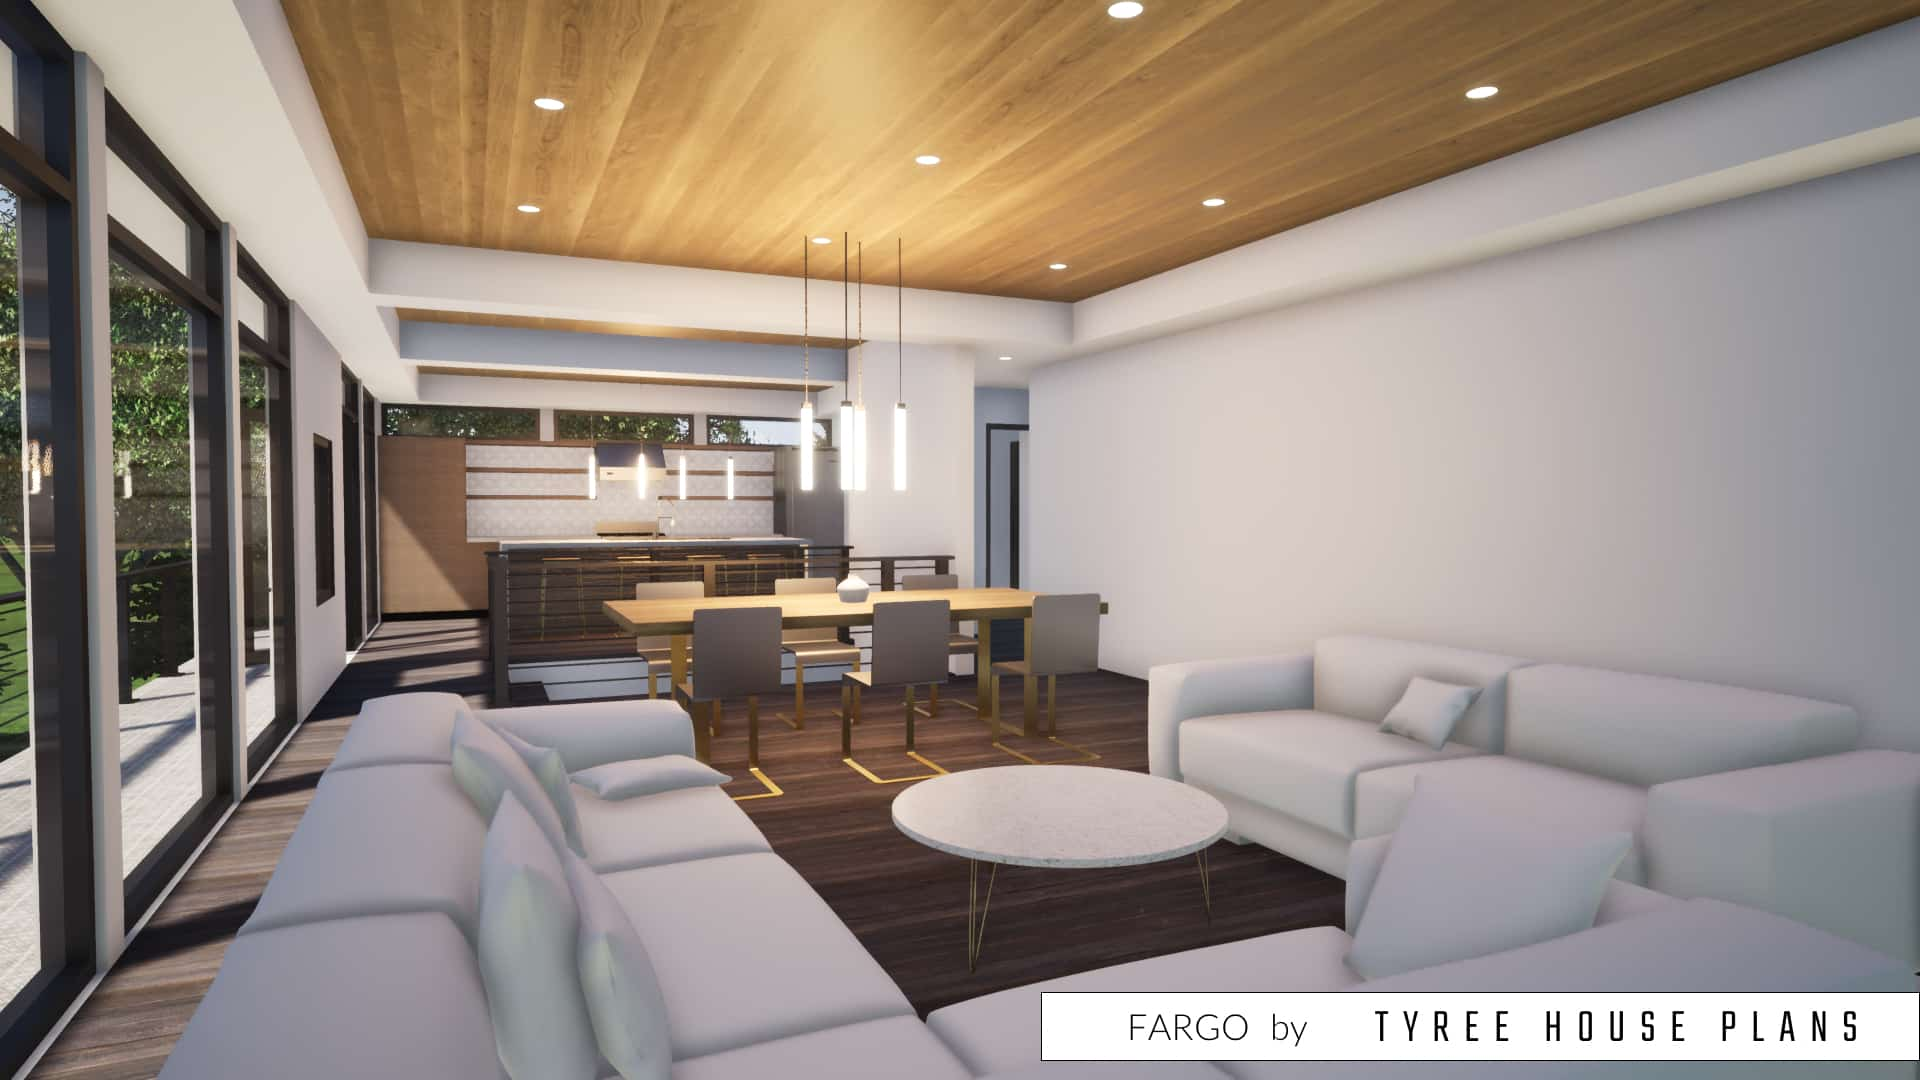 Fargo House Plan by Tyree House Plans